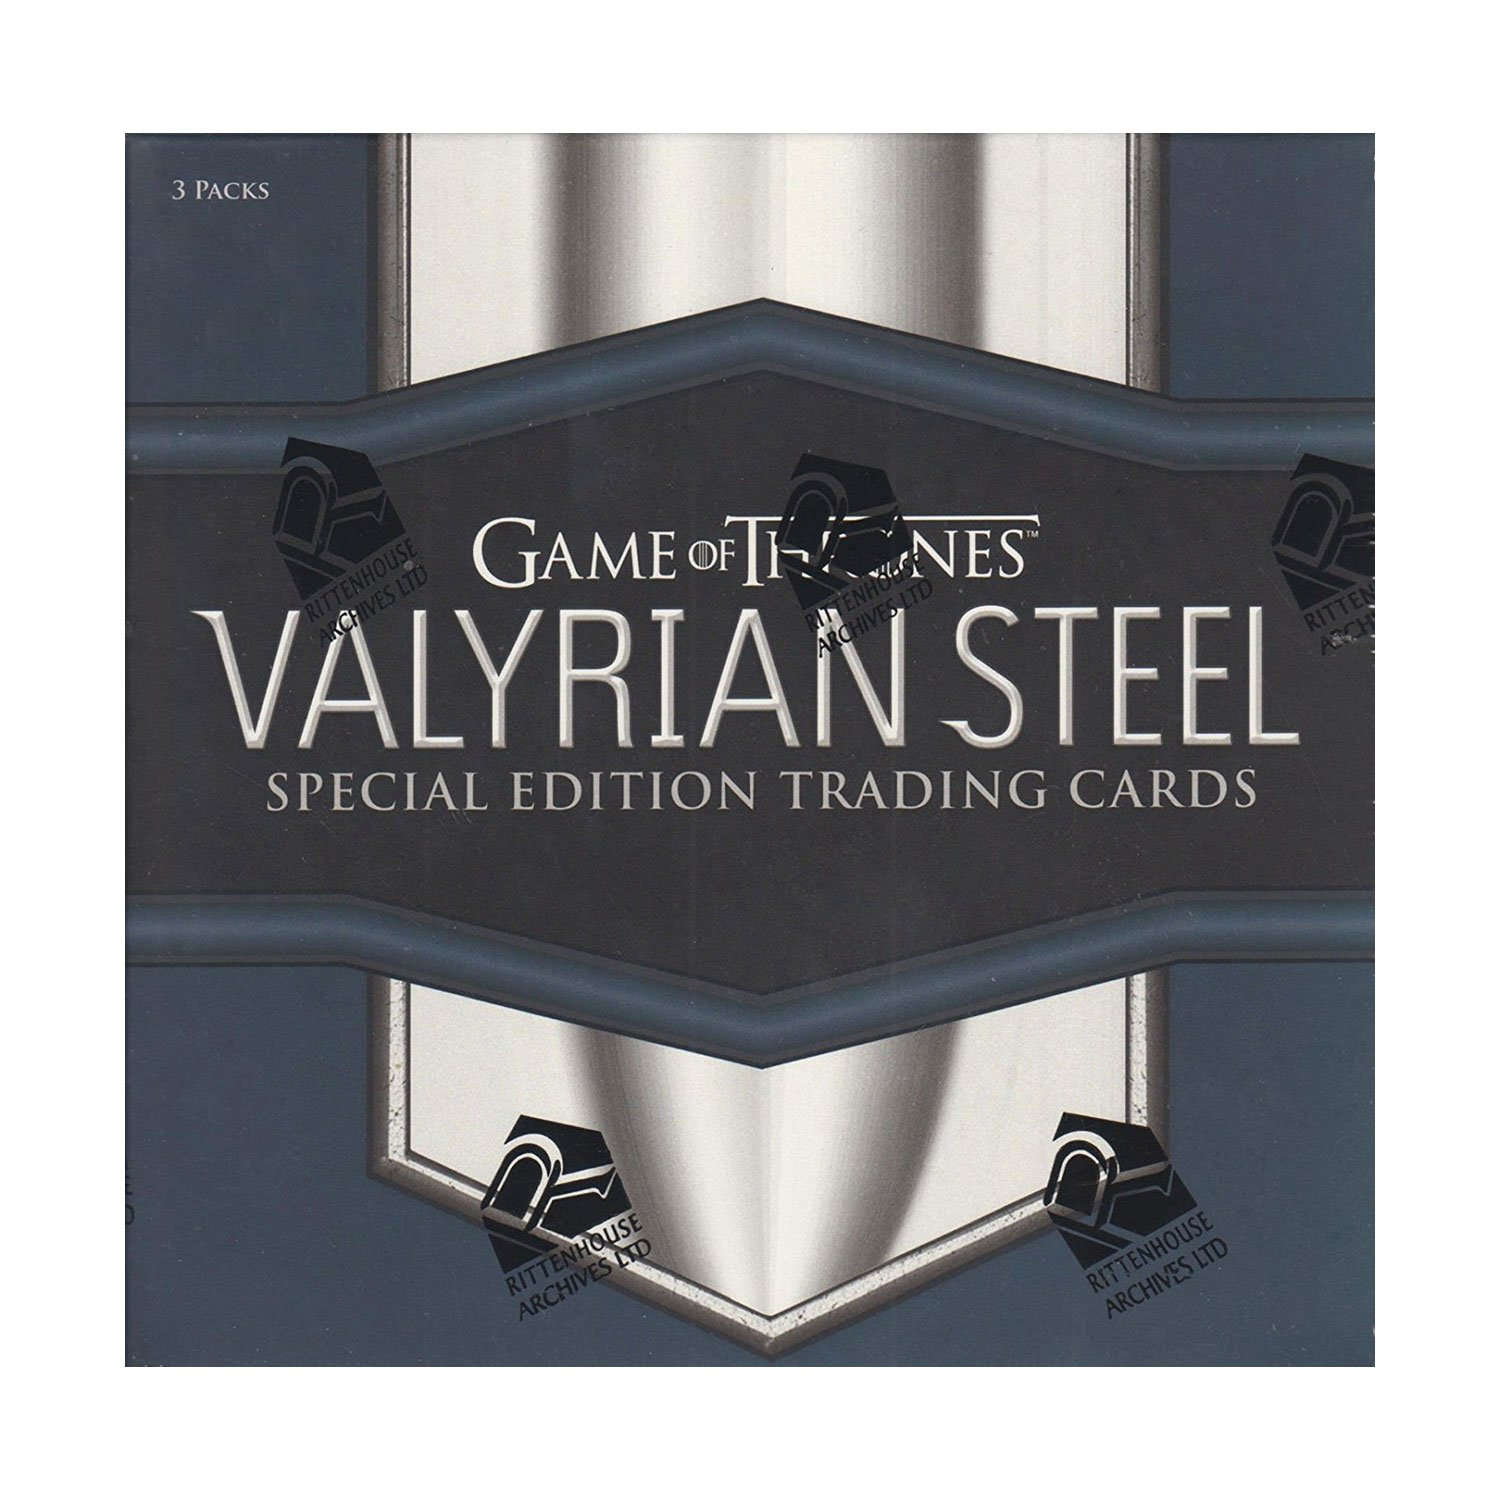 Game of Thrones: Valyrian Steel Trading Card Box by Game of Thrones